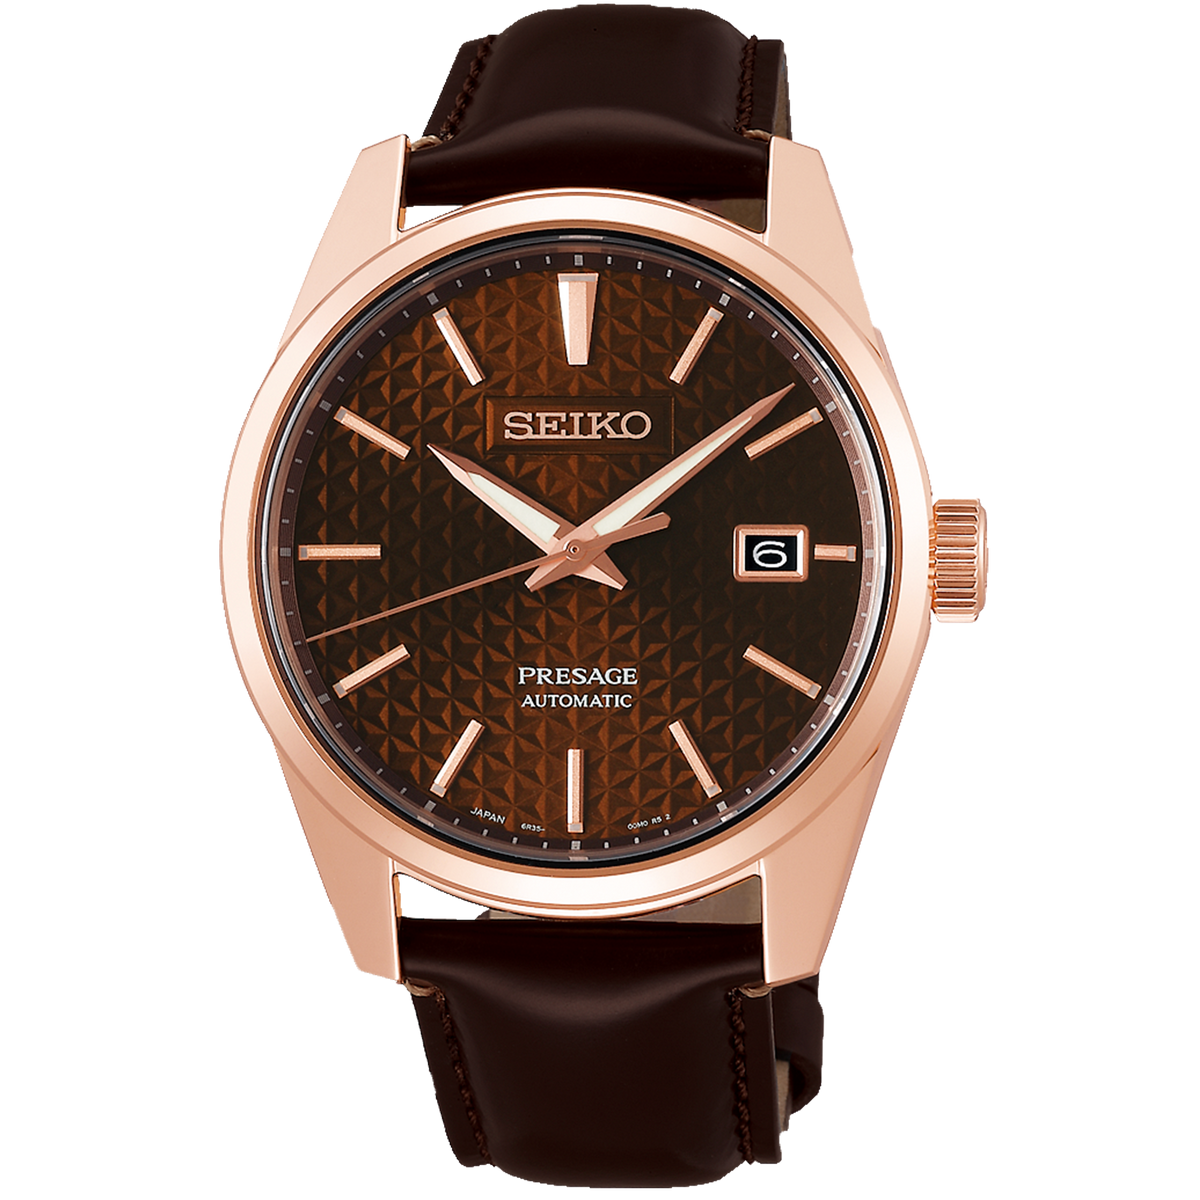 Seiko Presage Automatic - Sharp Edged SPB170J1